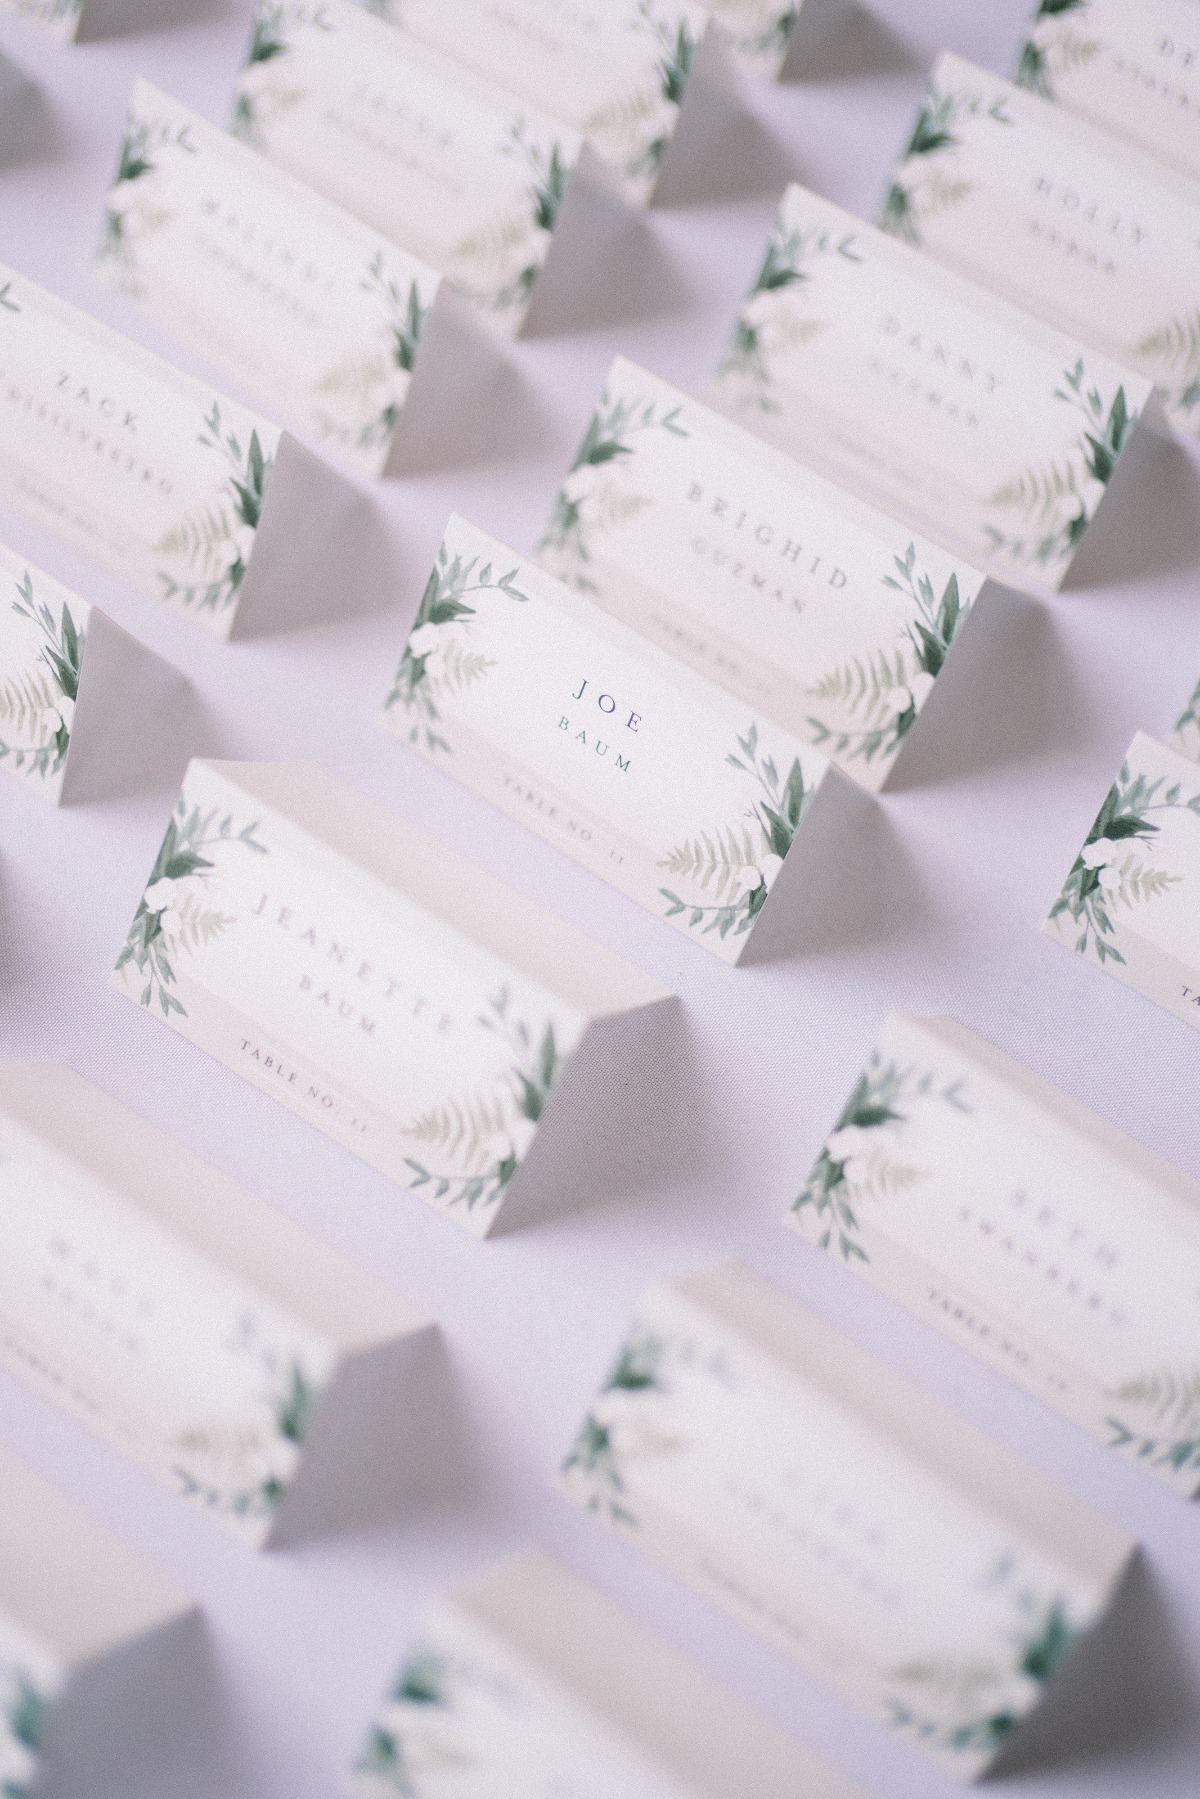 Greenery place card design